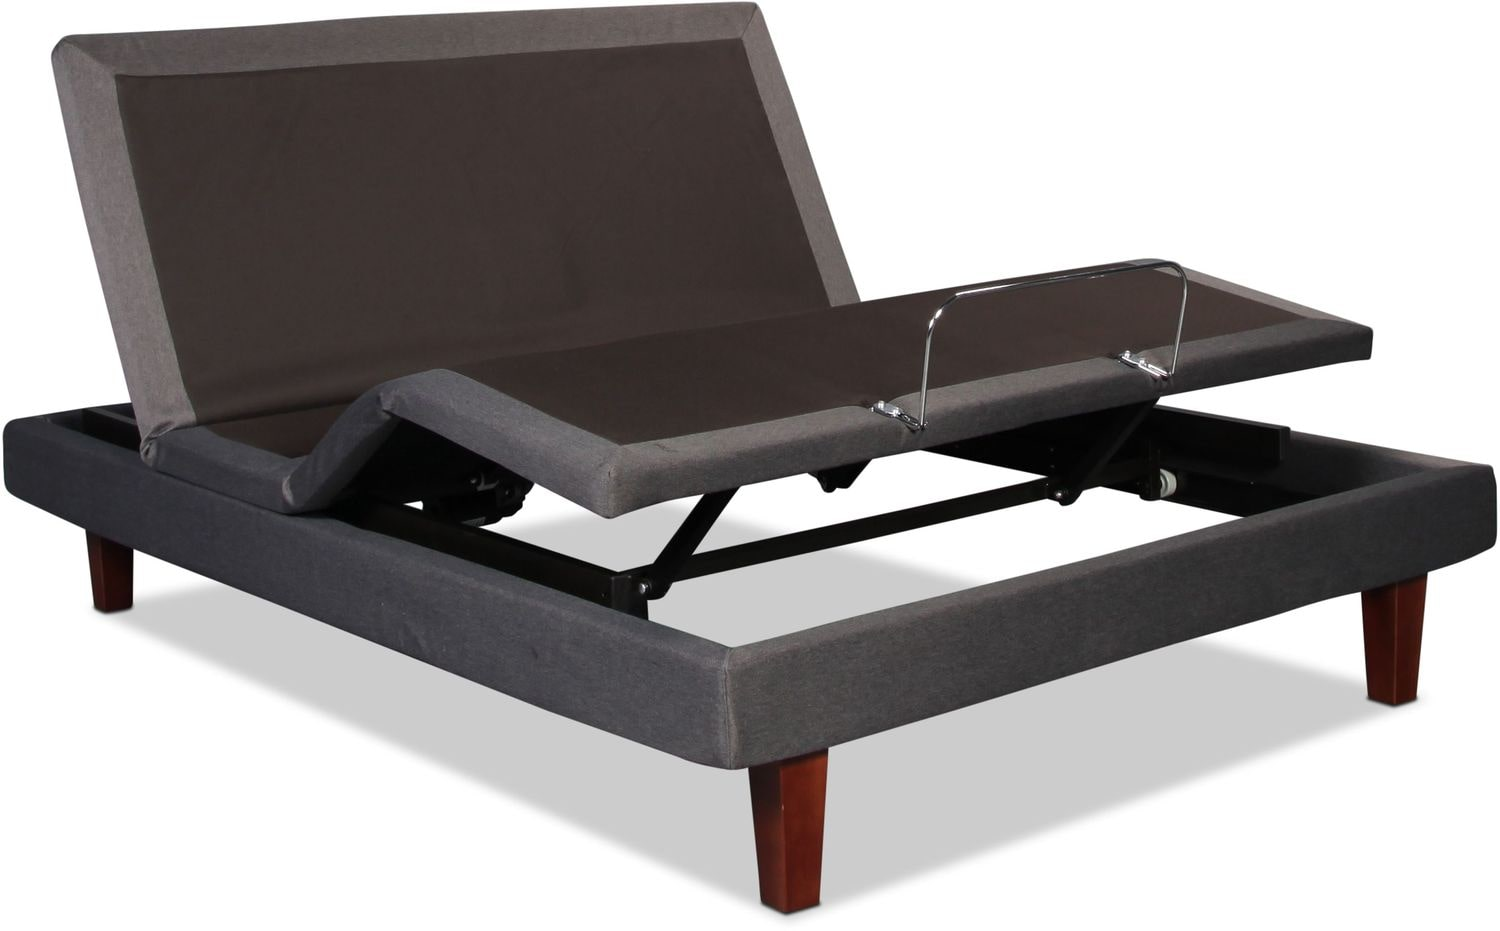 Sealy Posturepedic Adjustable Bed Reviews : Sealy reflexion queen adjustable base levin furniture